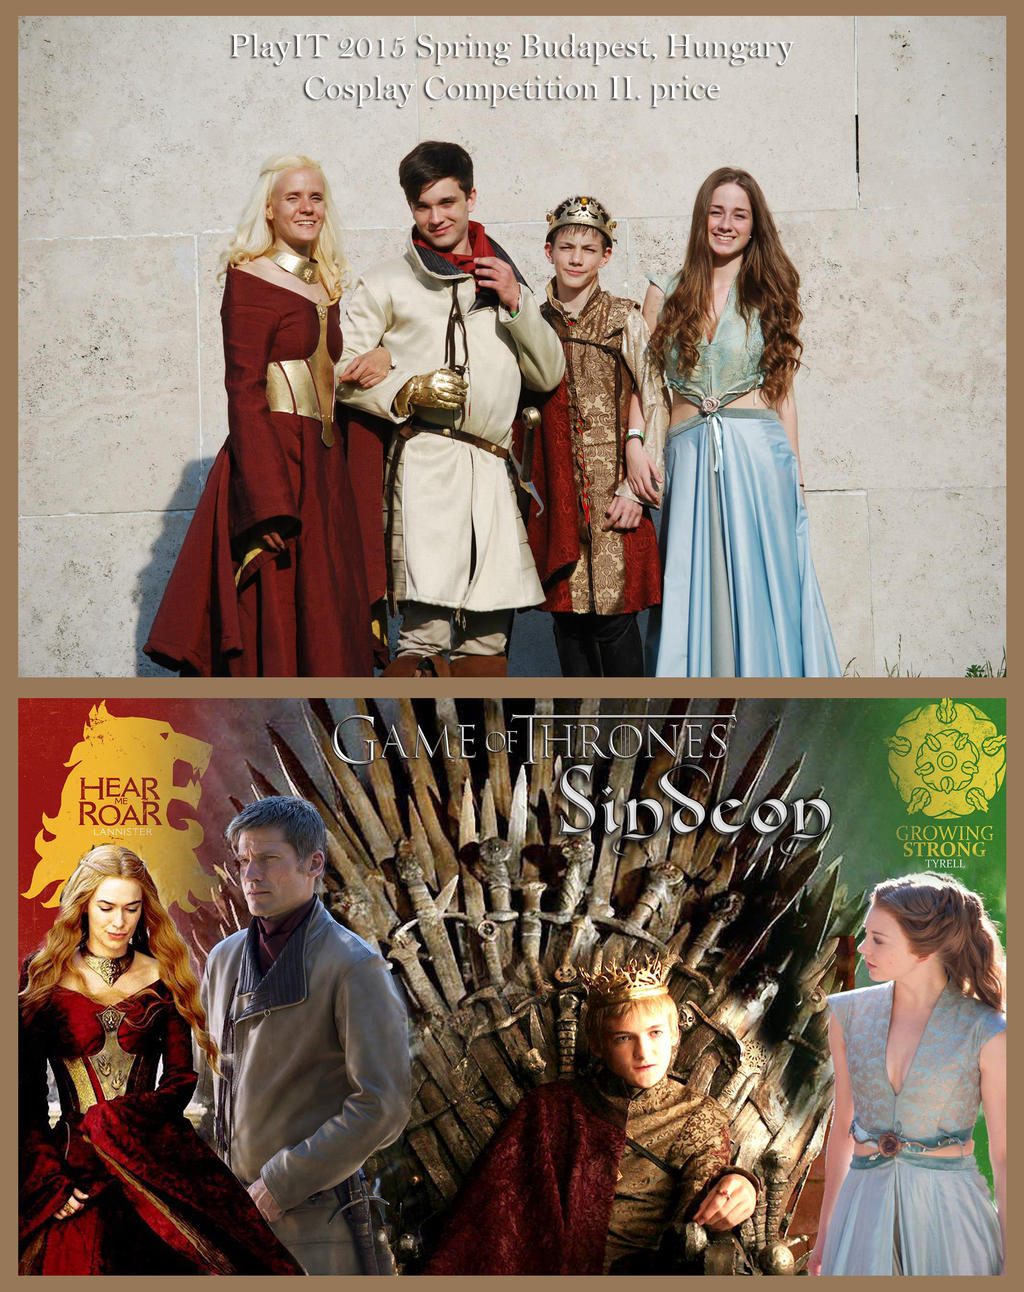 Game of Thrones Cosplay group